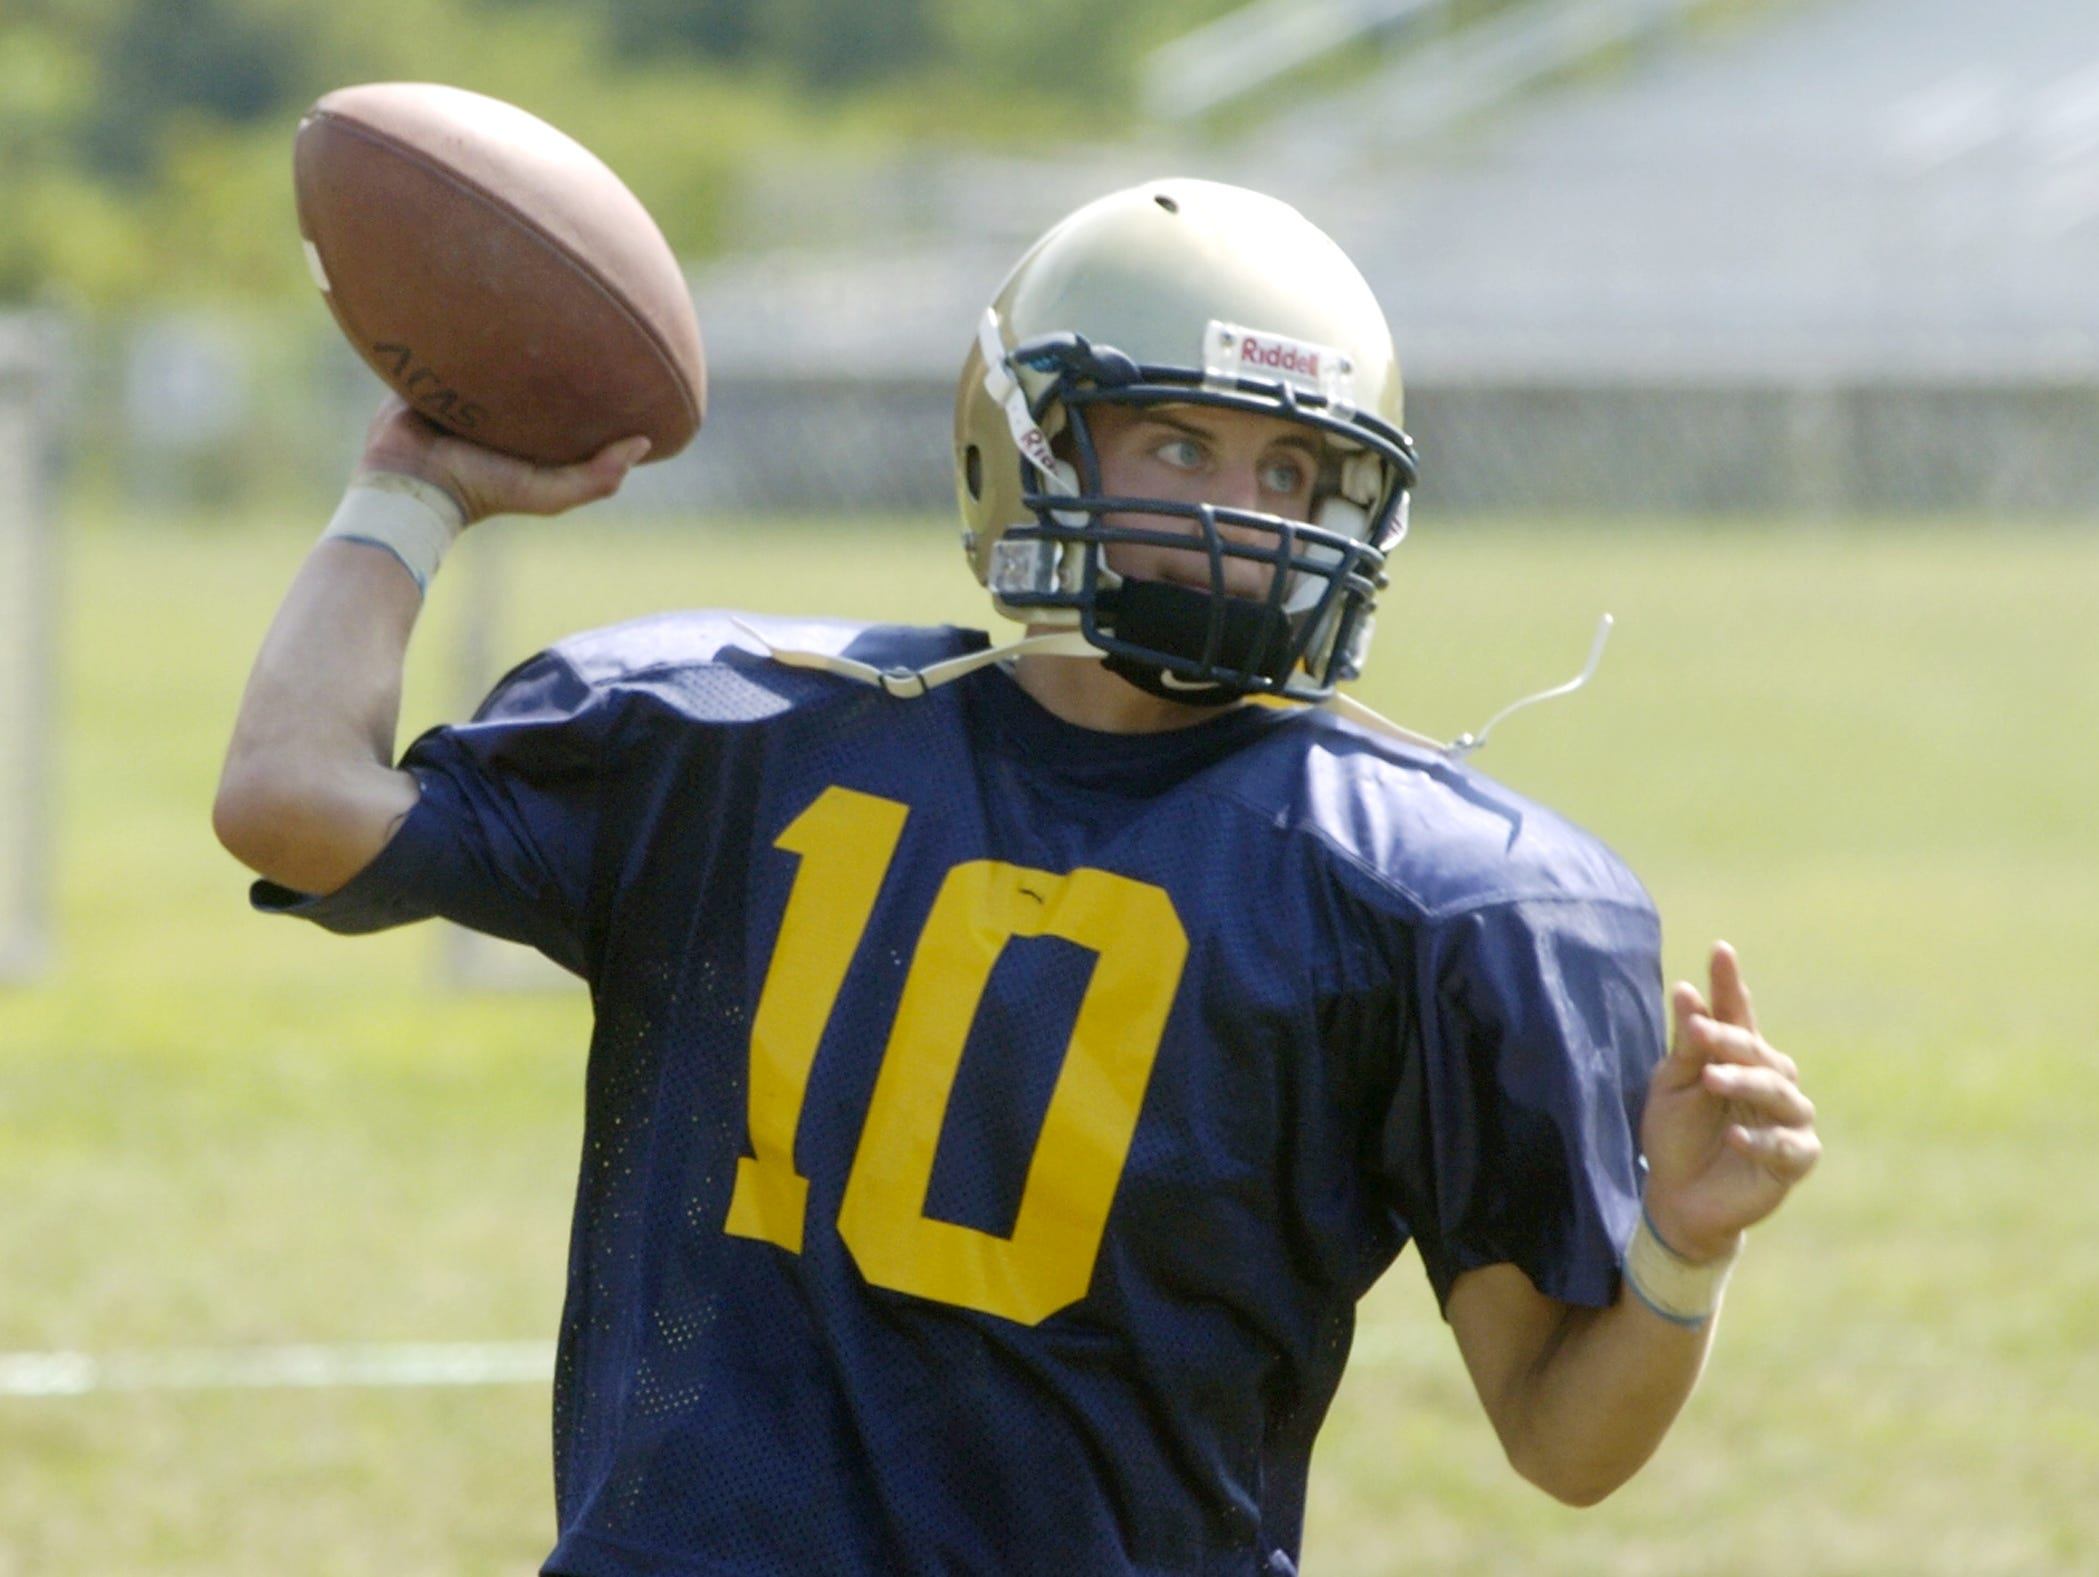 From 2006: Susquehanna Valley's Eric Novobilski throws during practice Thursday at the high school.